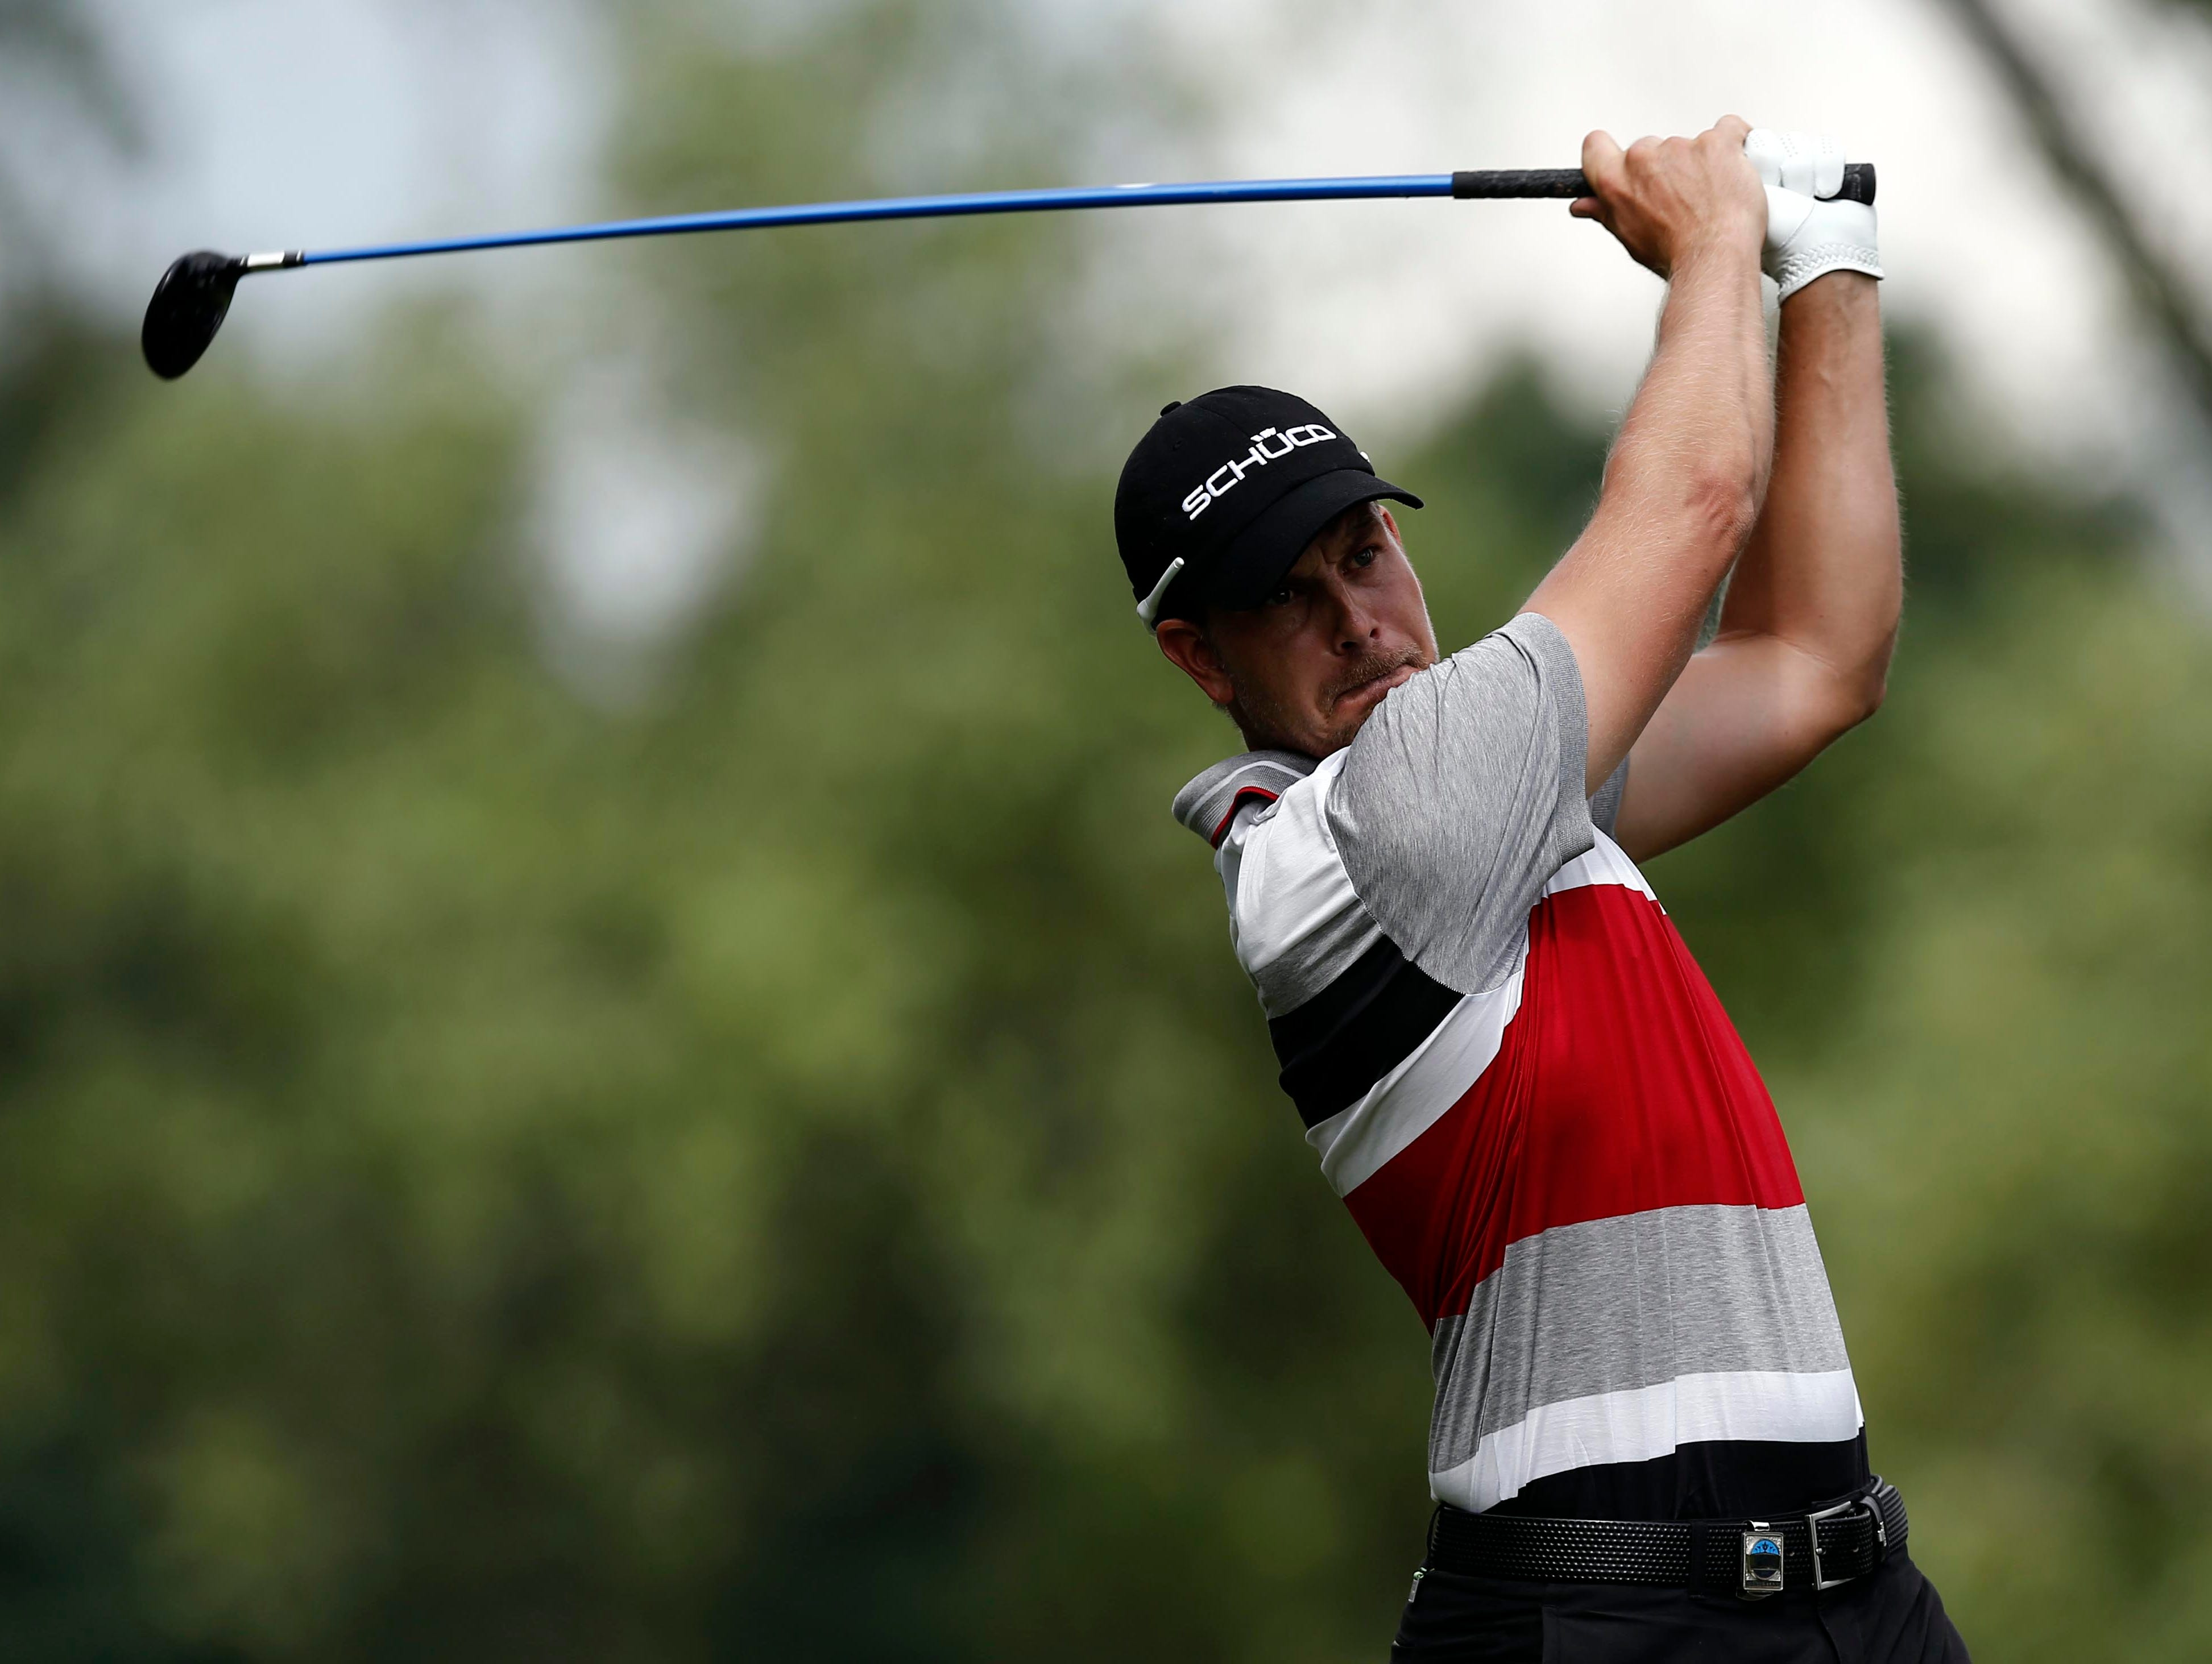 Henrik Stenson tees on the 9th hole.